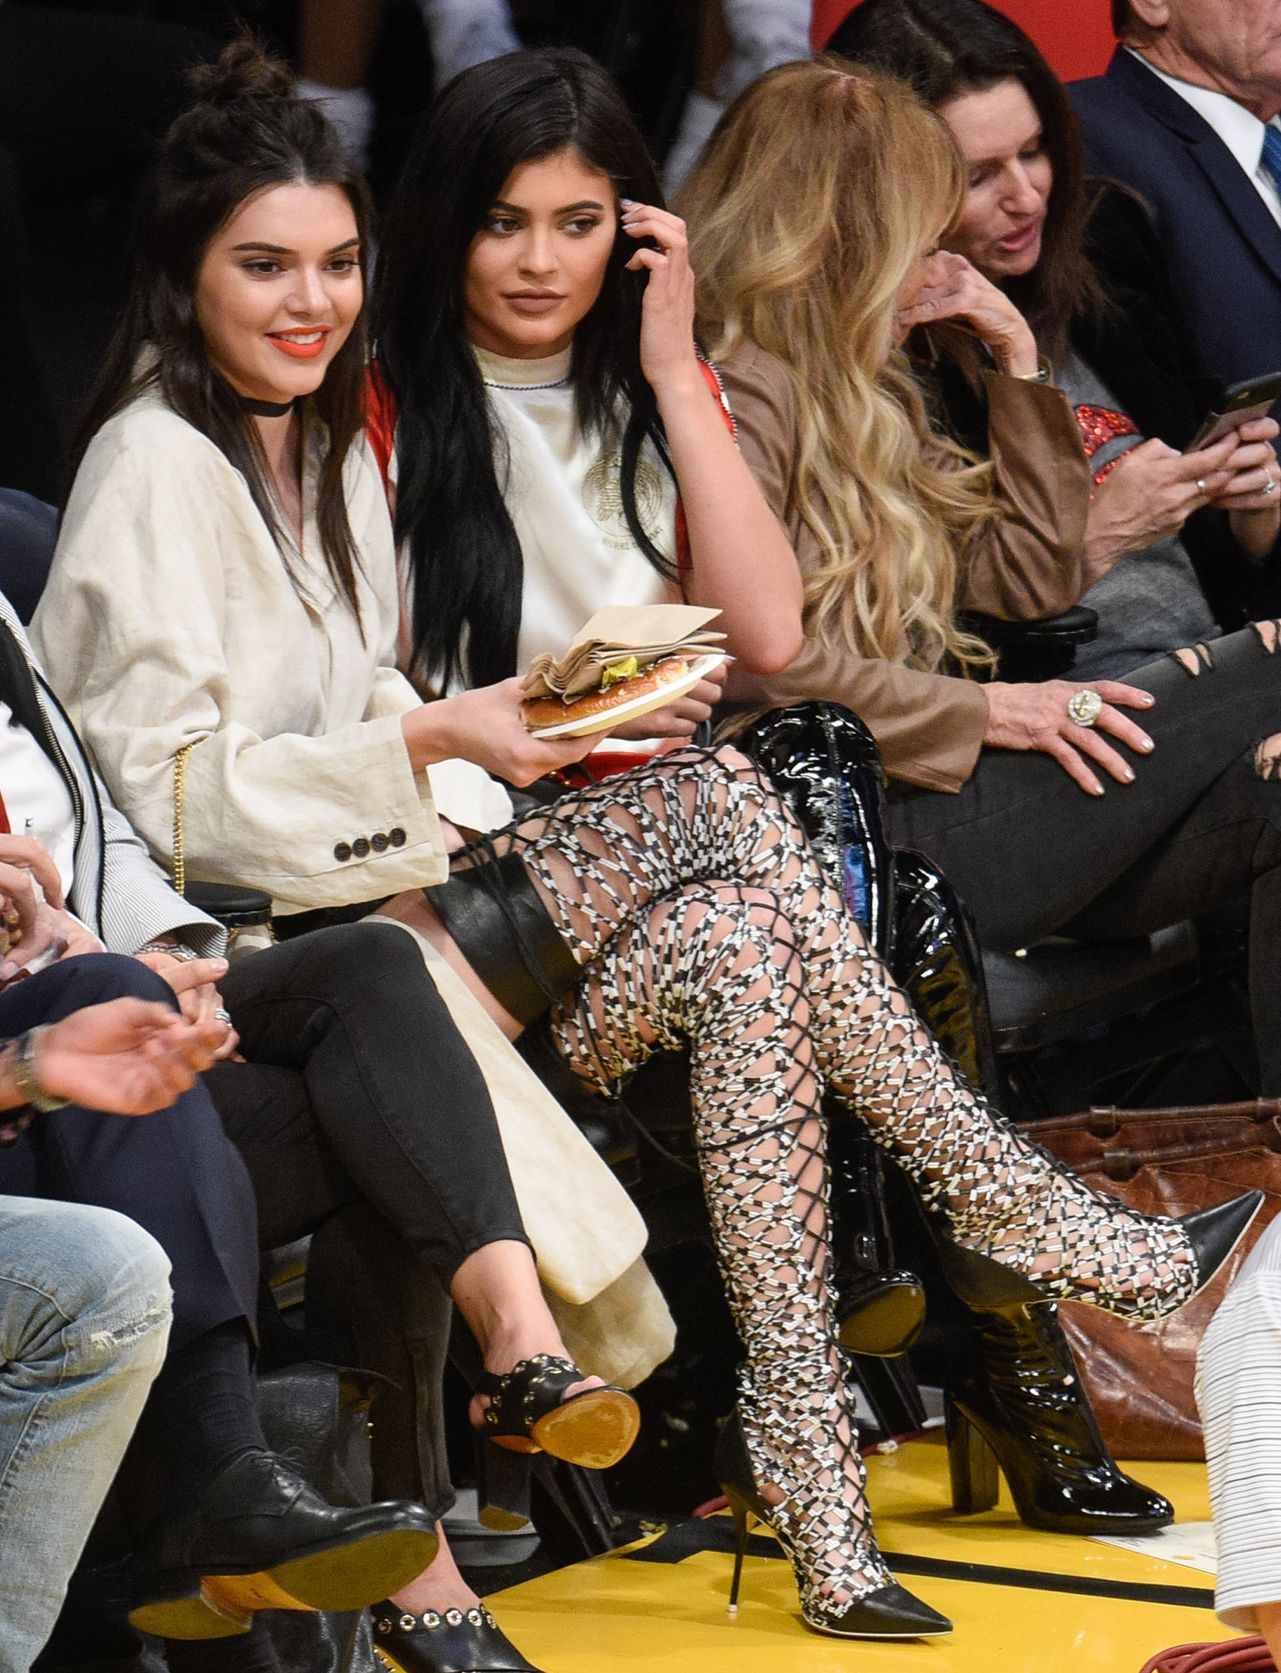 QUIZ: Are You More Like Kendall Or Kylie Jenner? - Perez ...